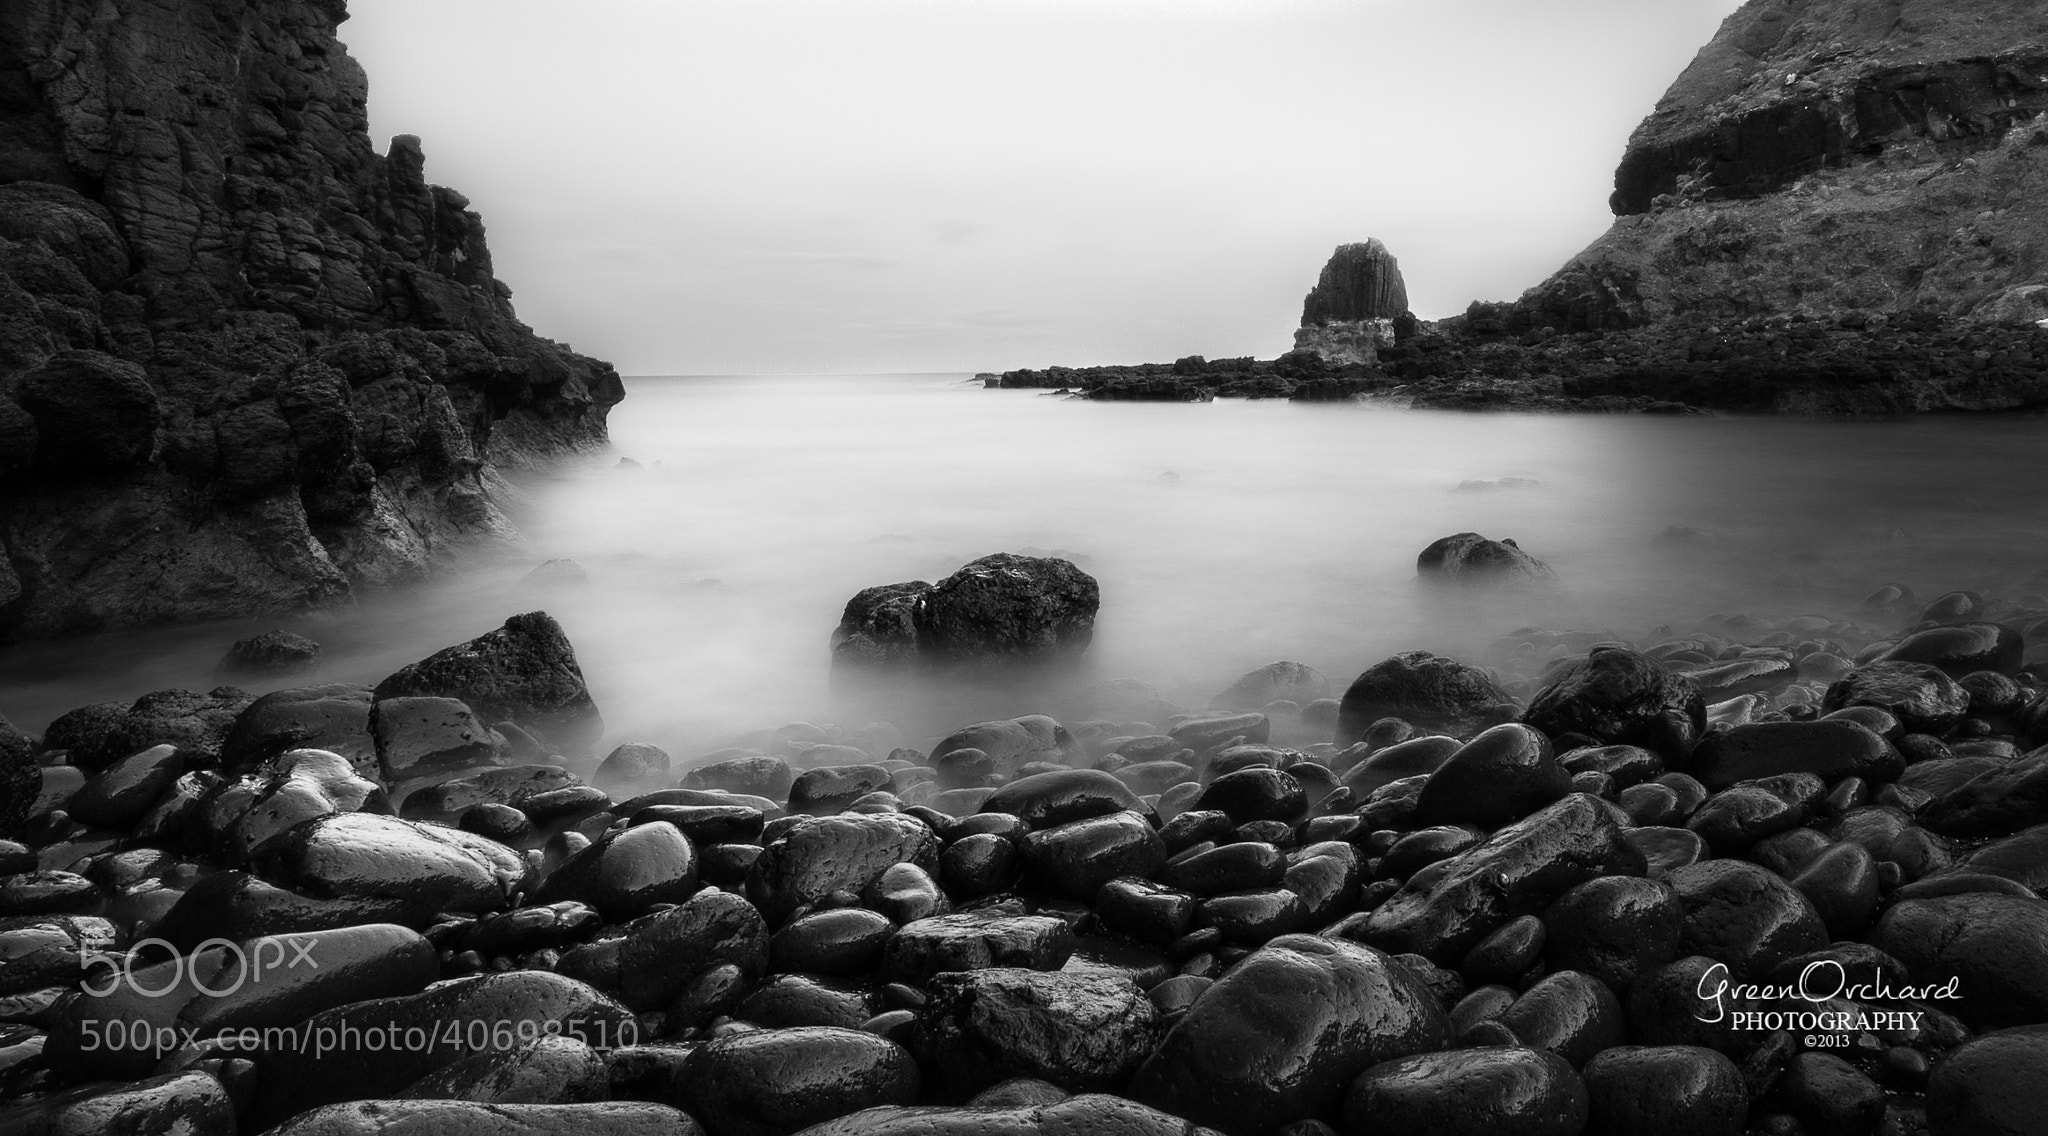 Photograph Misty Chill by Green Orchard Photography on 500px